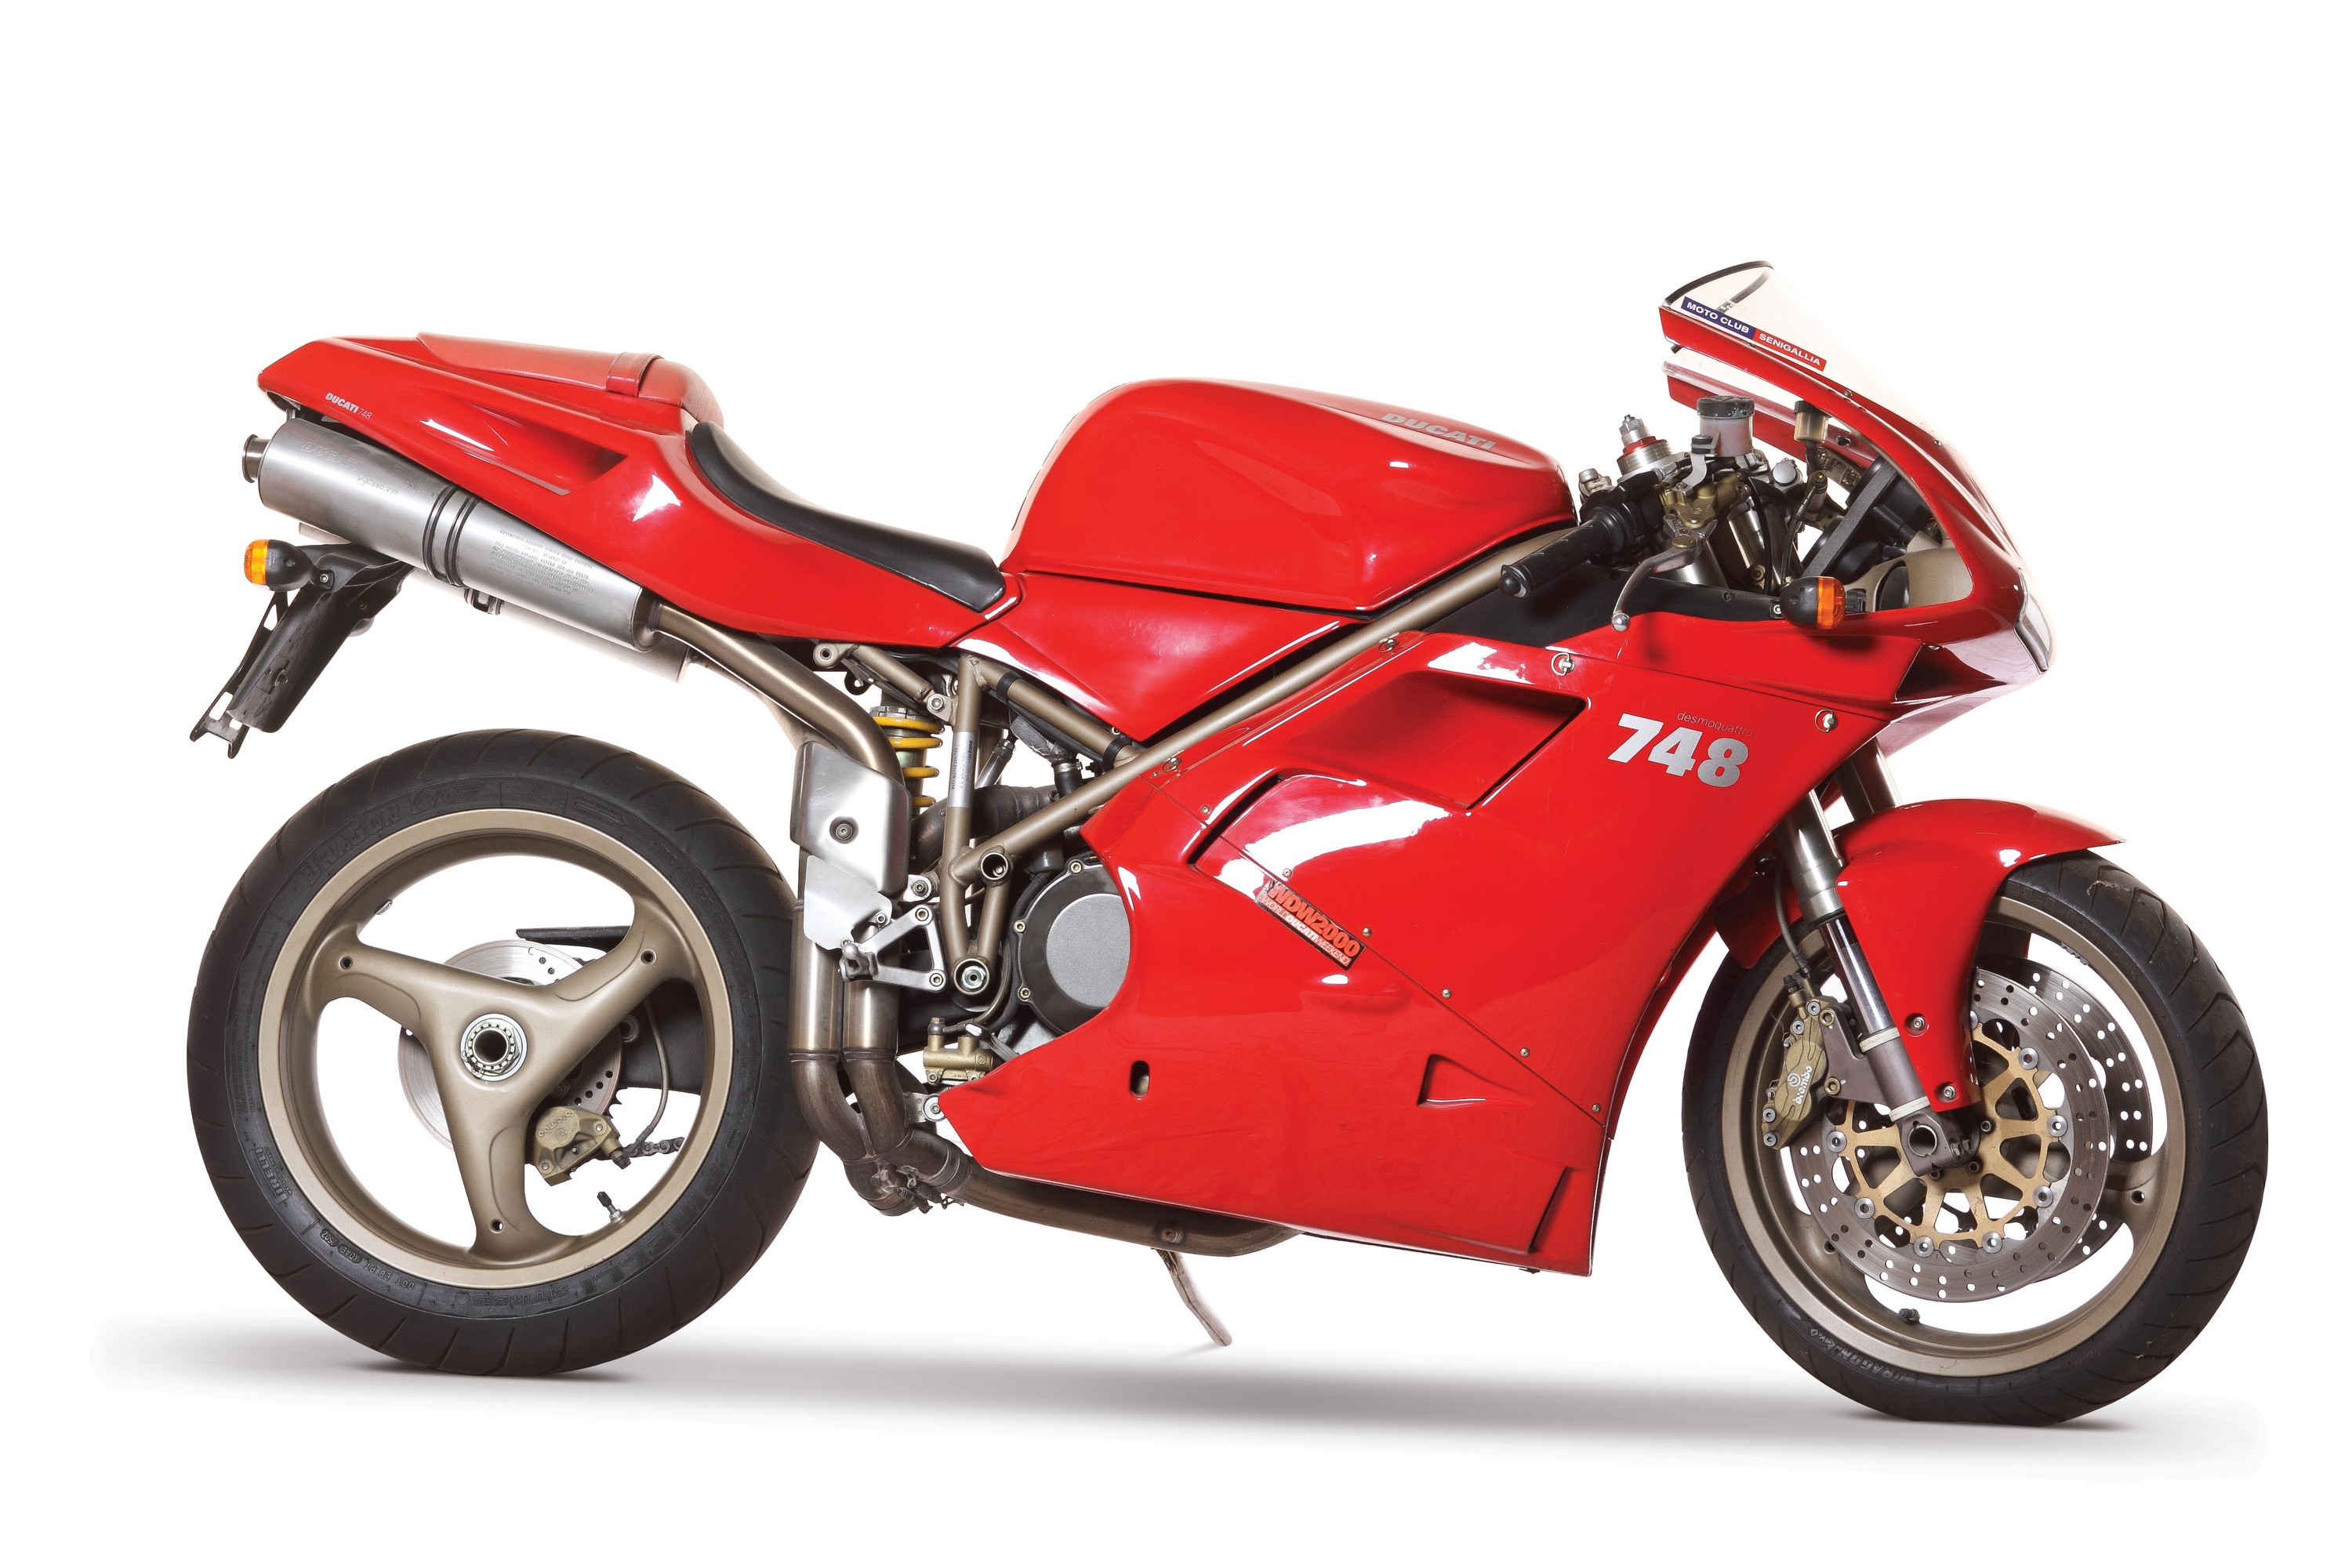 1999 Ducati 748 Biposto | Top Speed. »